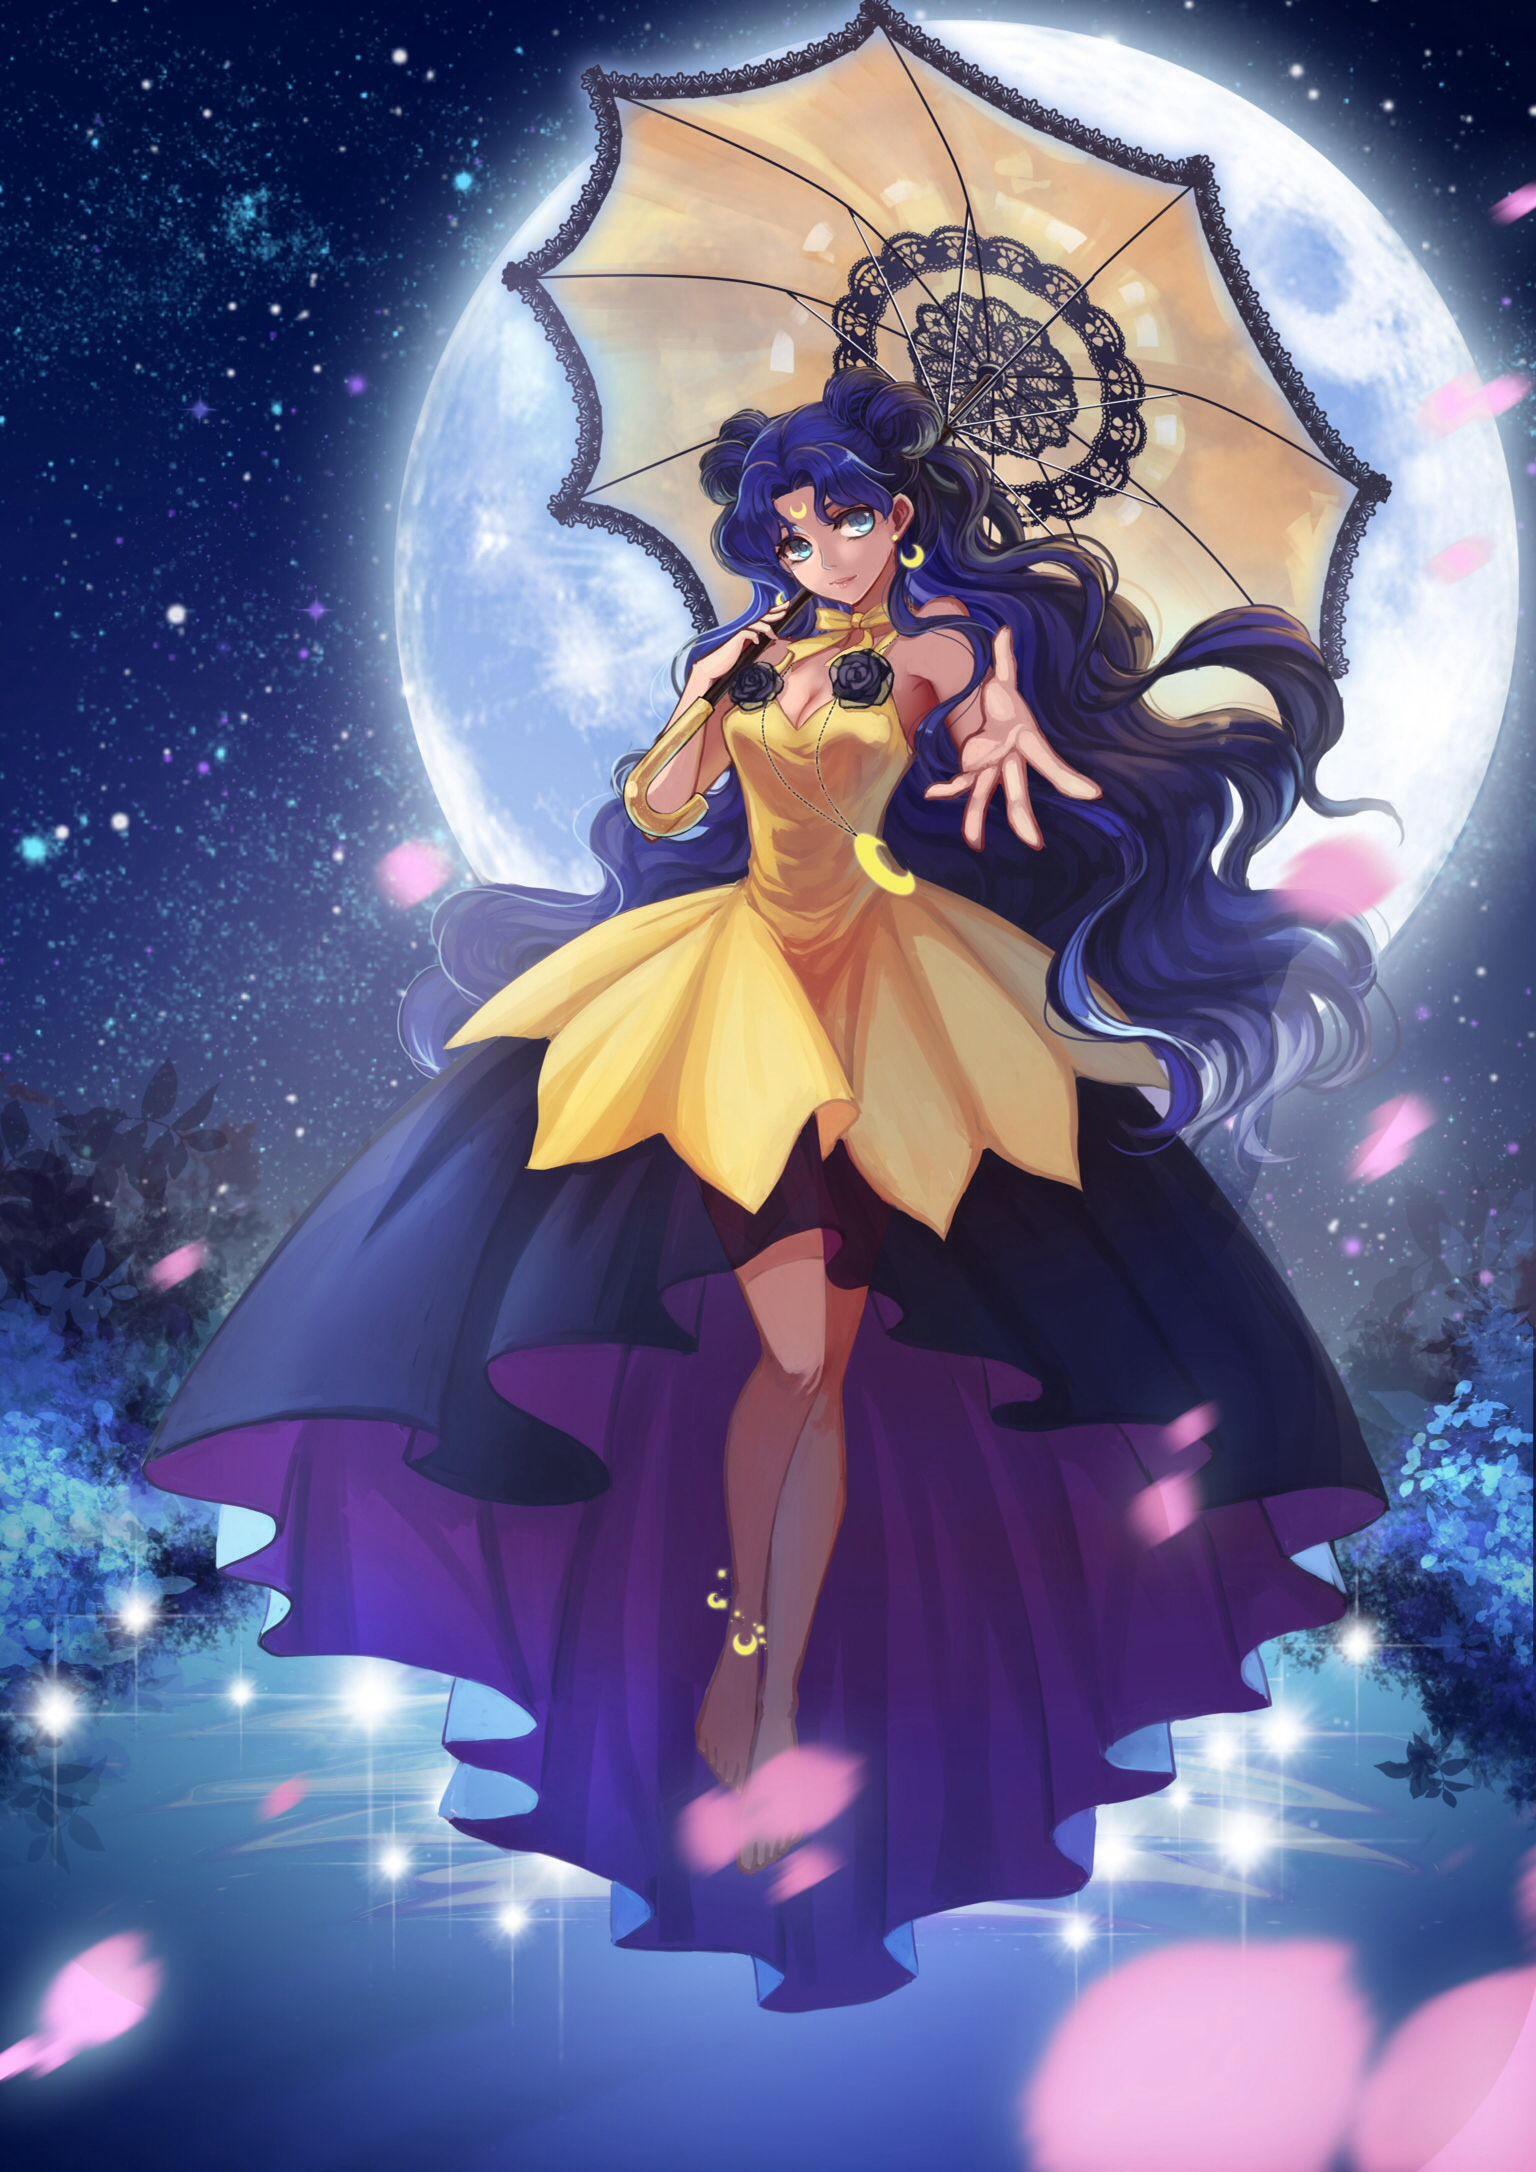 Human luna bishoujo senshi sailor moon pinterest - Princess luna screensaver ...